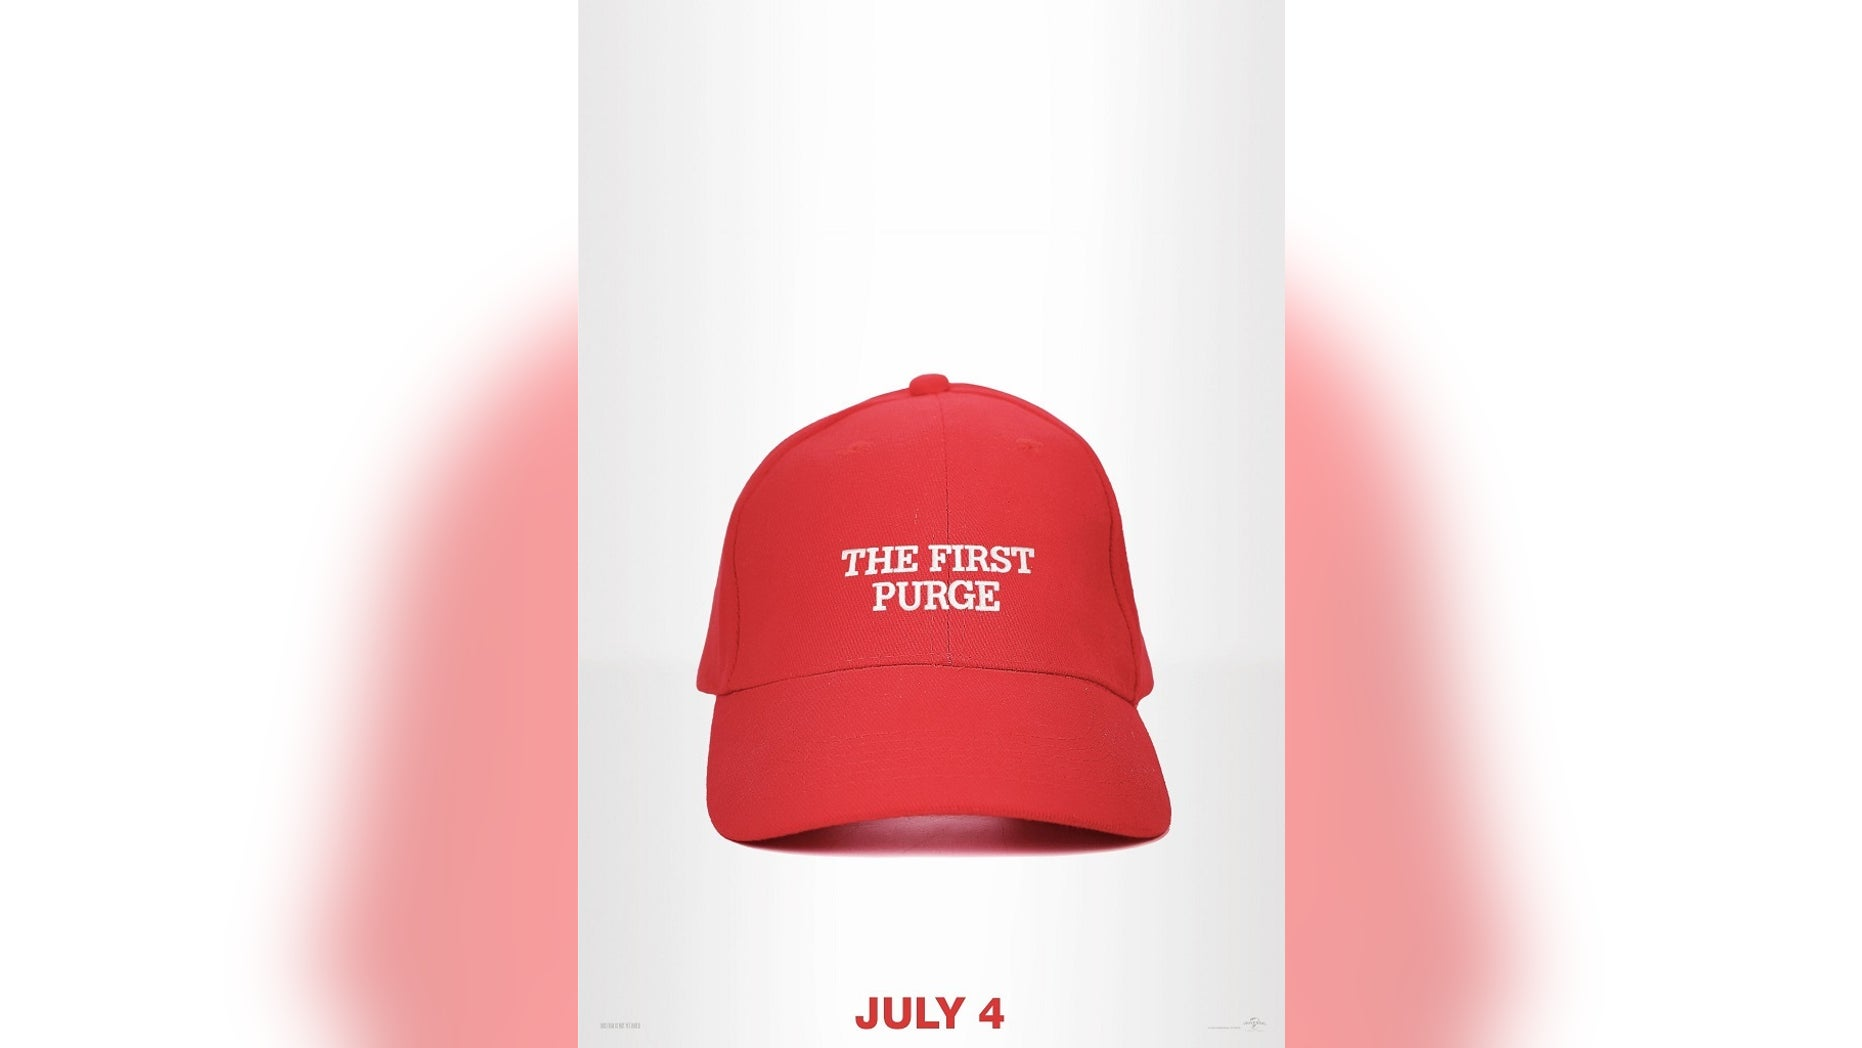 b08dc0c40 Purge' movie poster features hat just like Trump's 'Make America ...